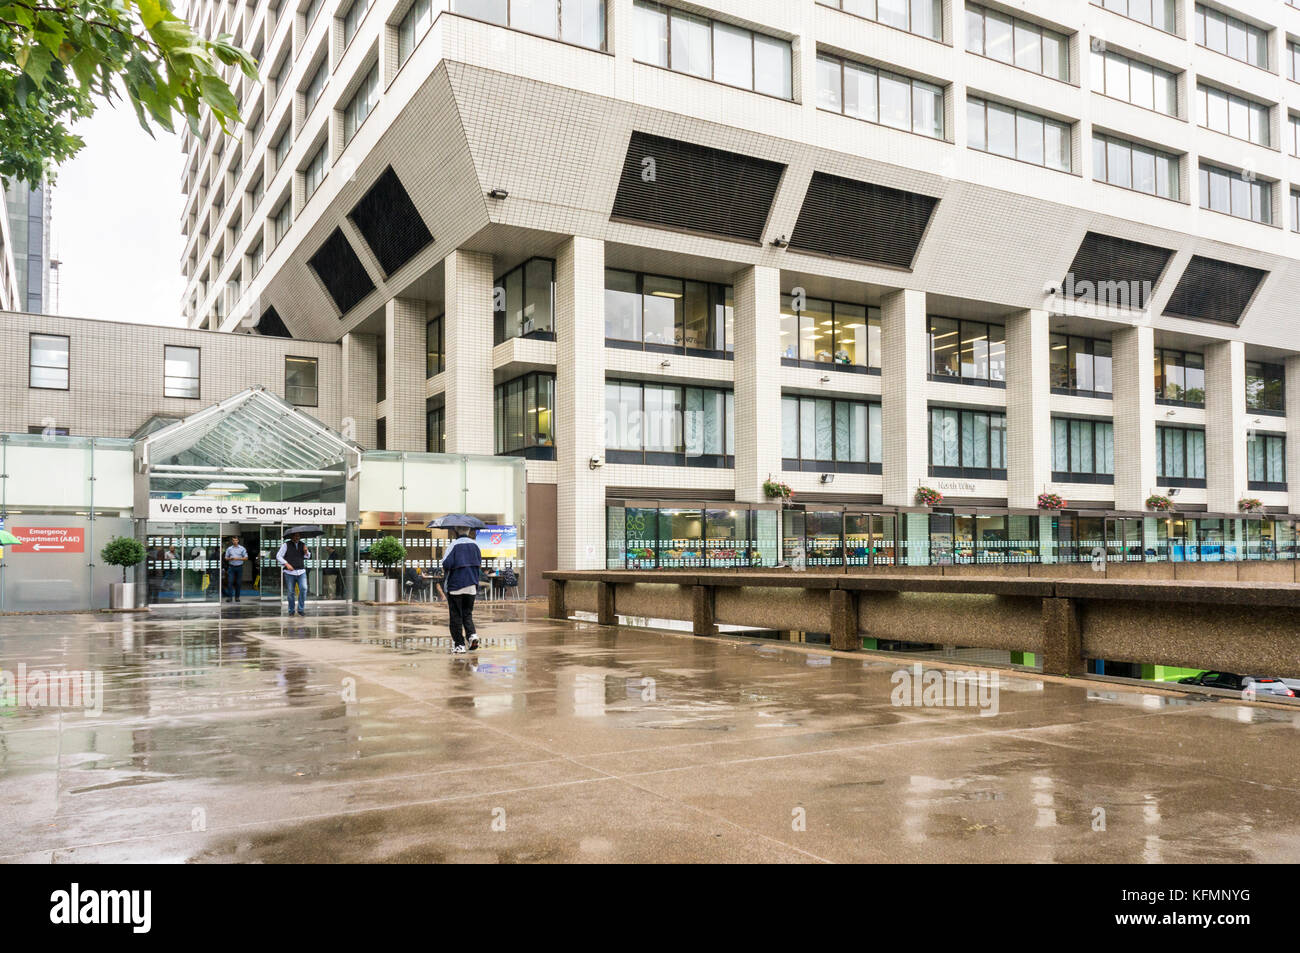 St Thomas Hospital, Westminster, London, England, GB, UK - Stock Image